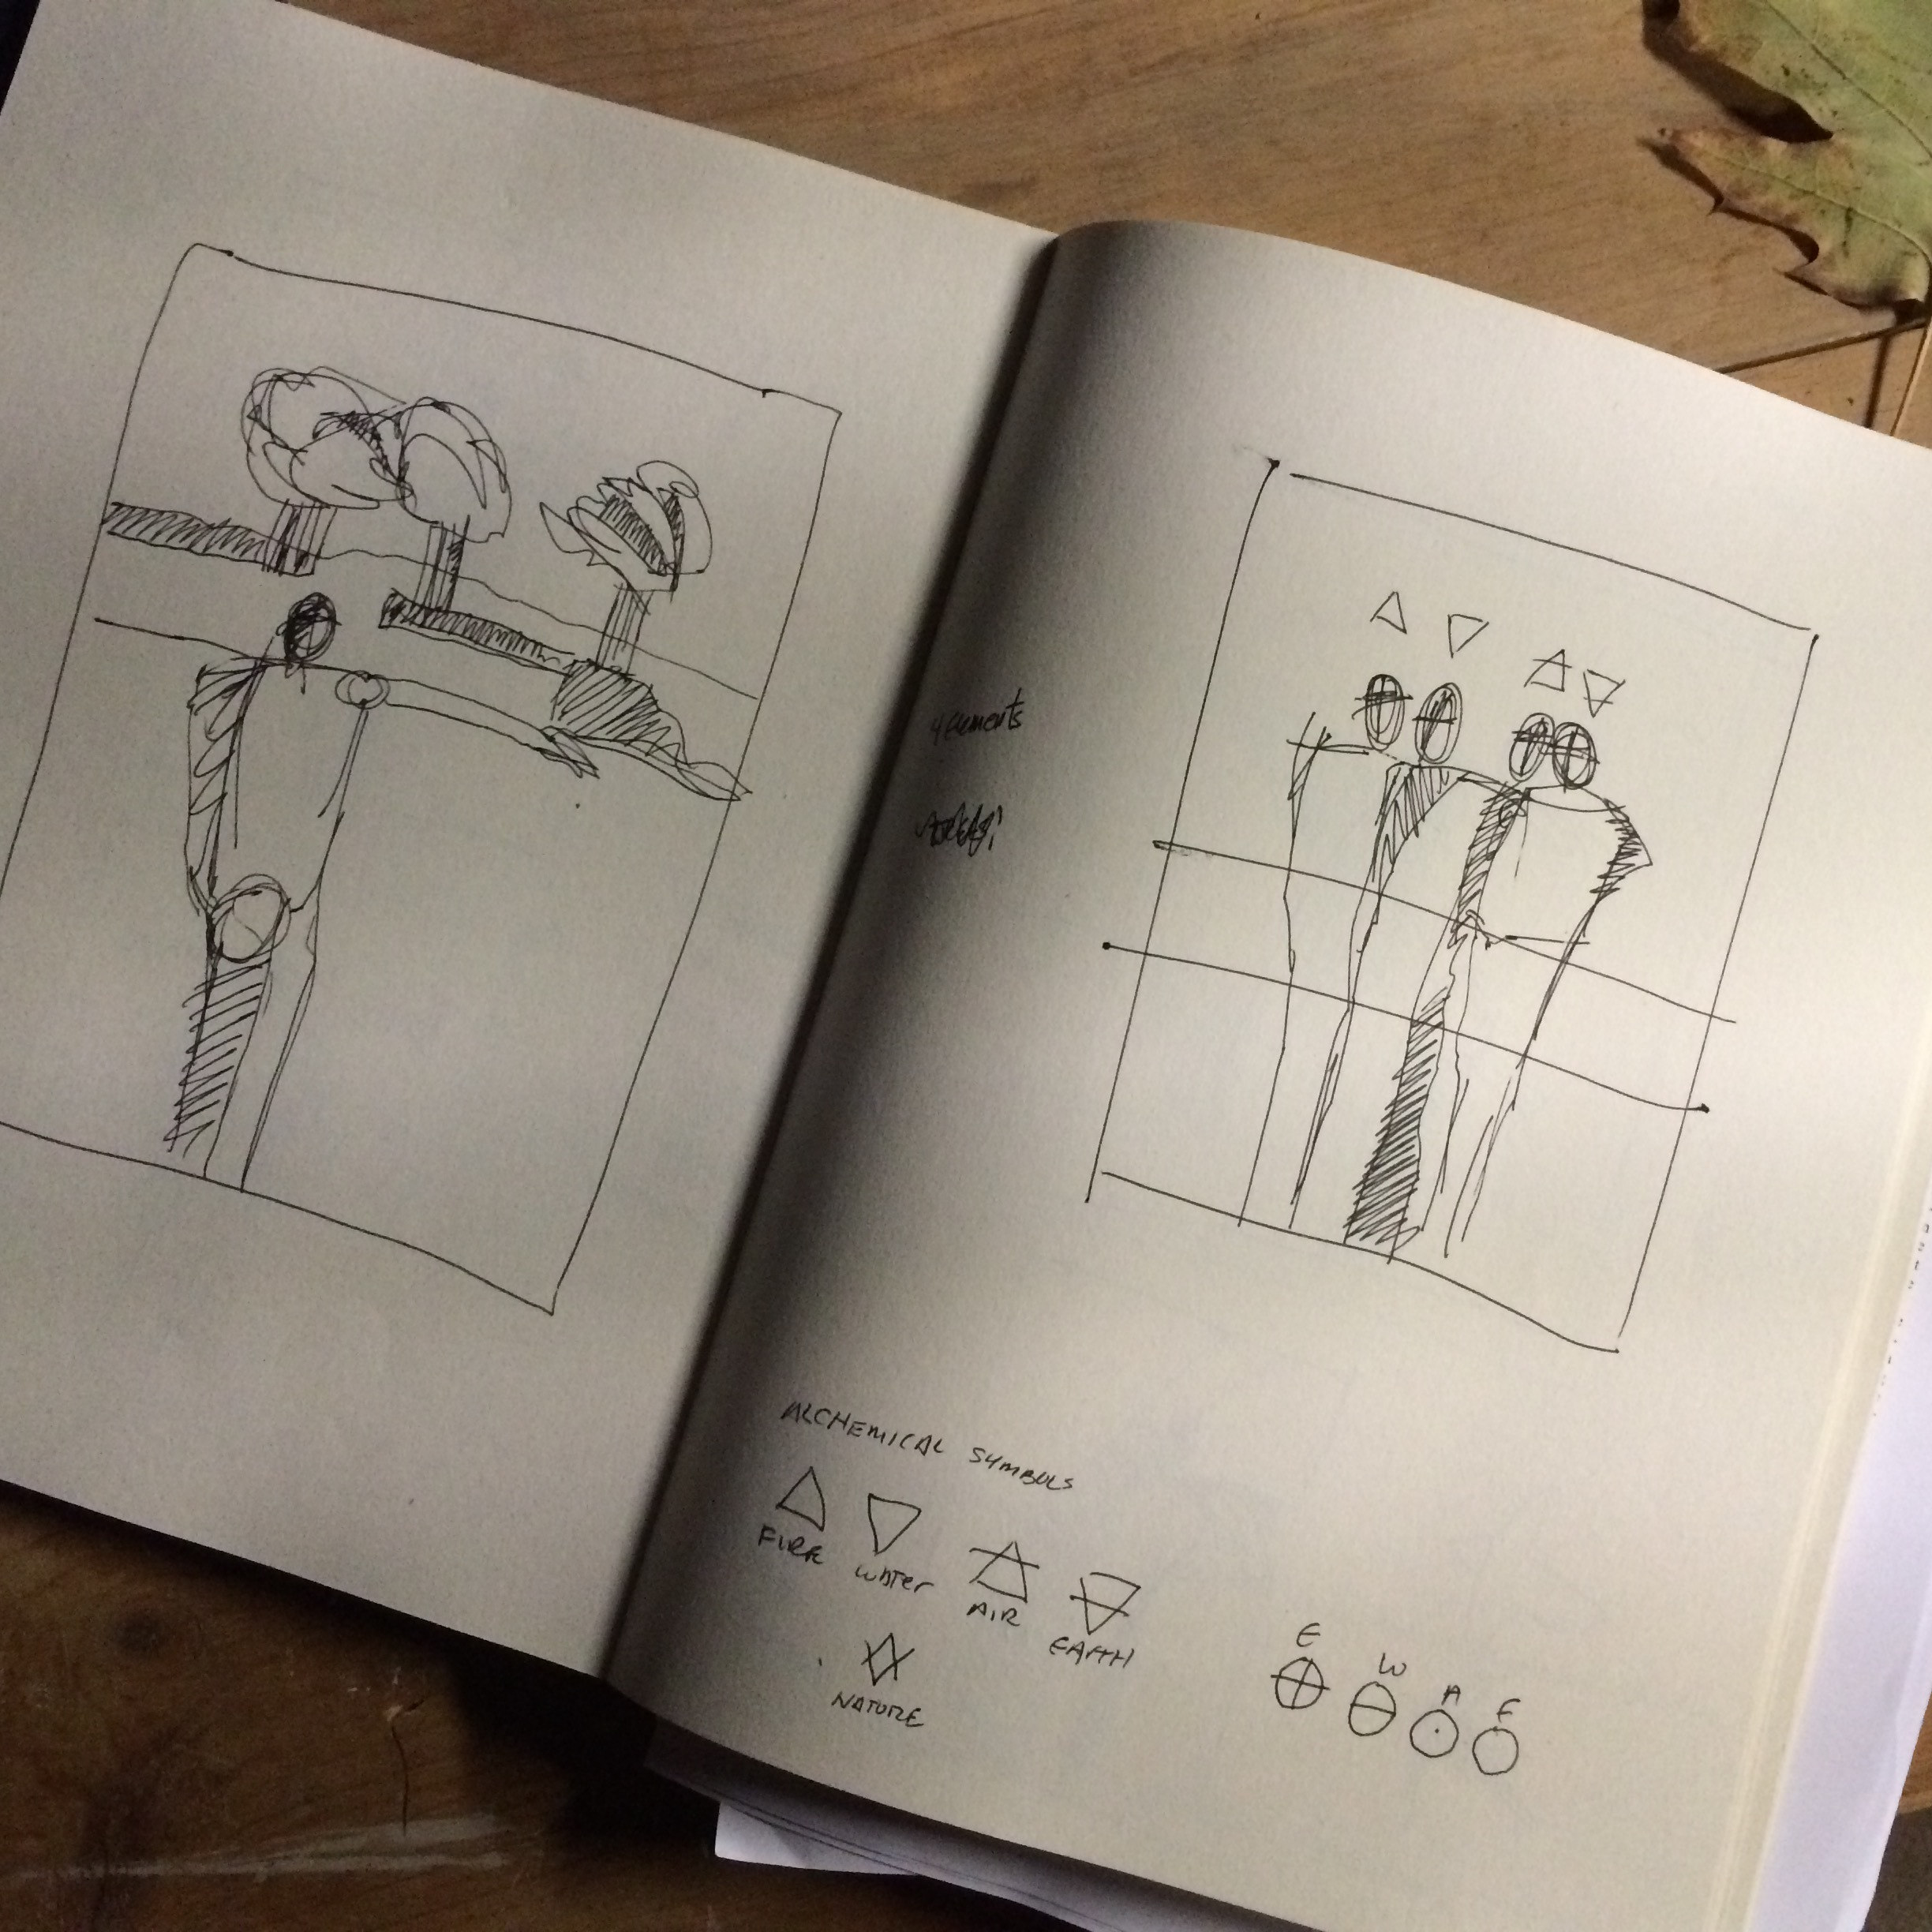 Sketches from the book